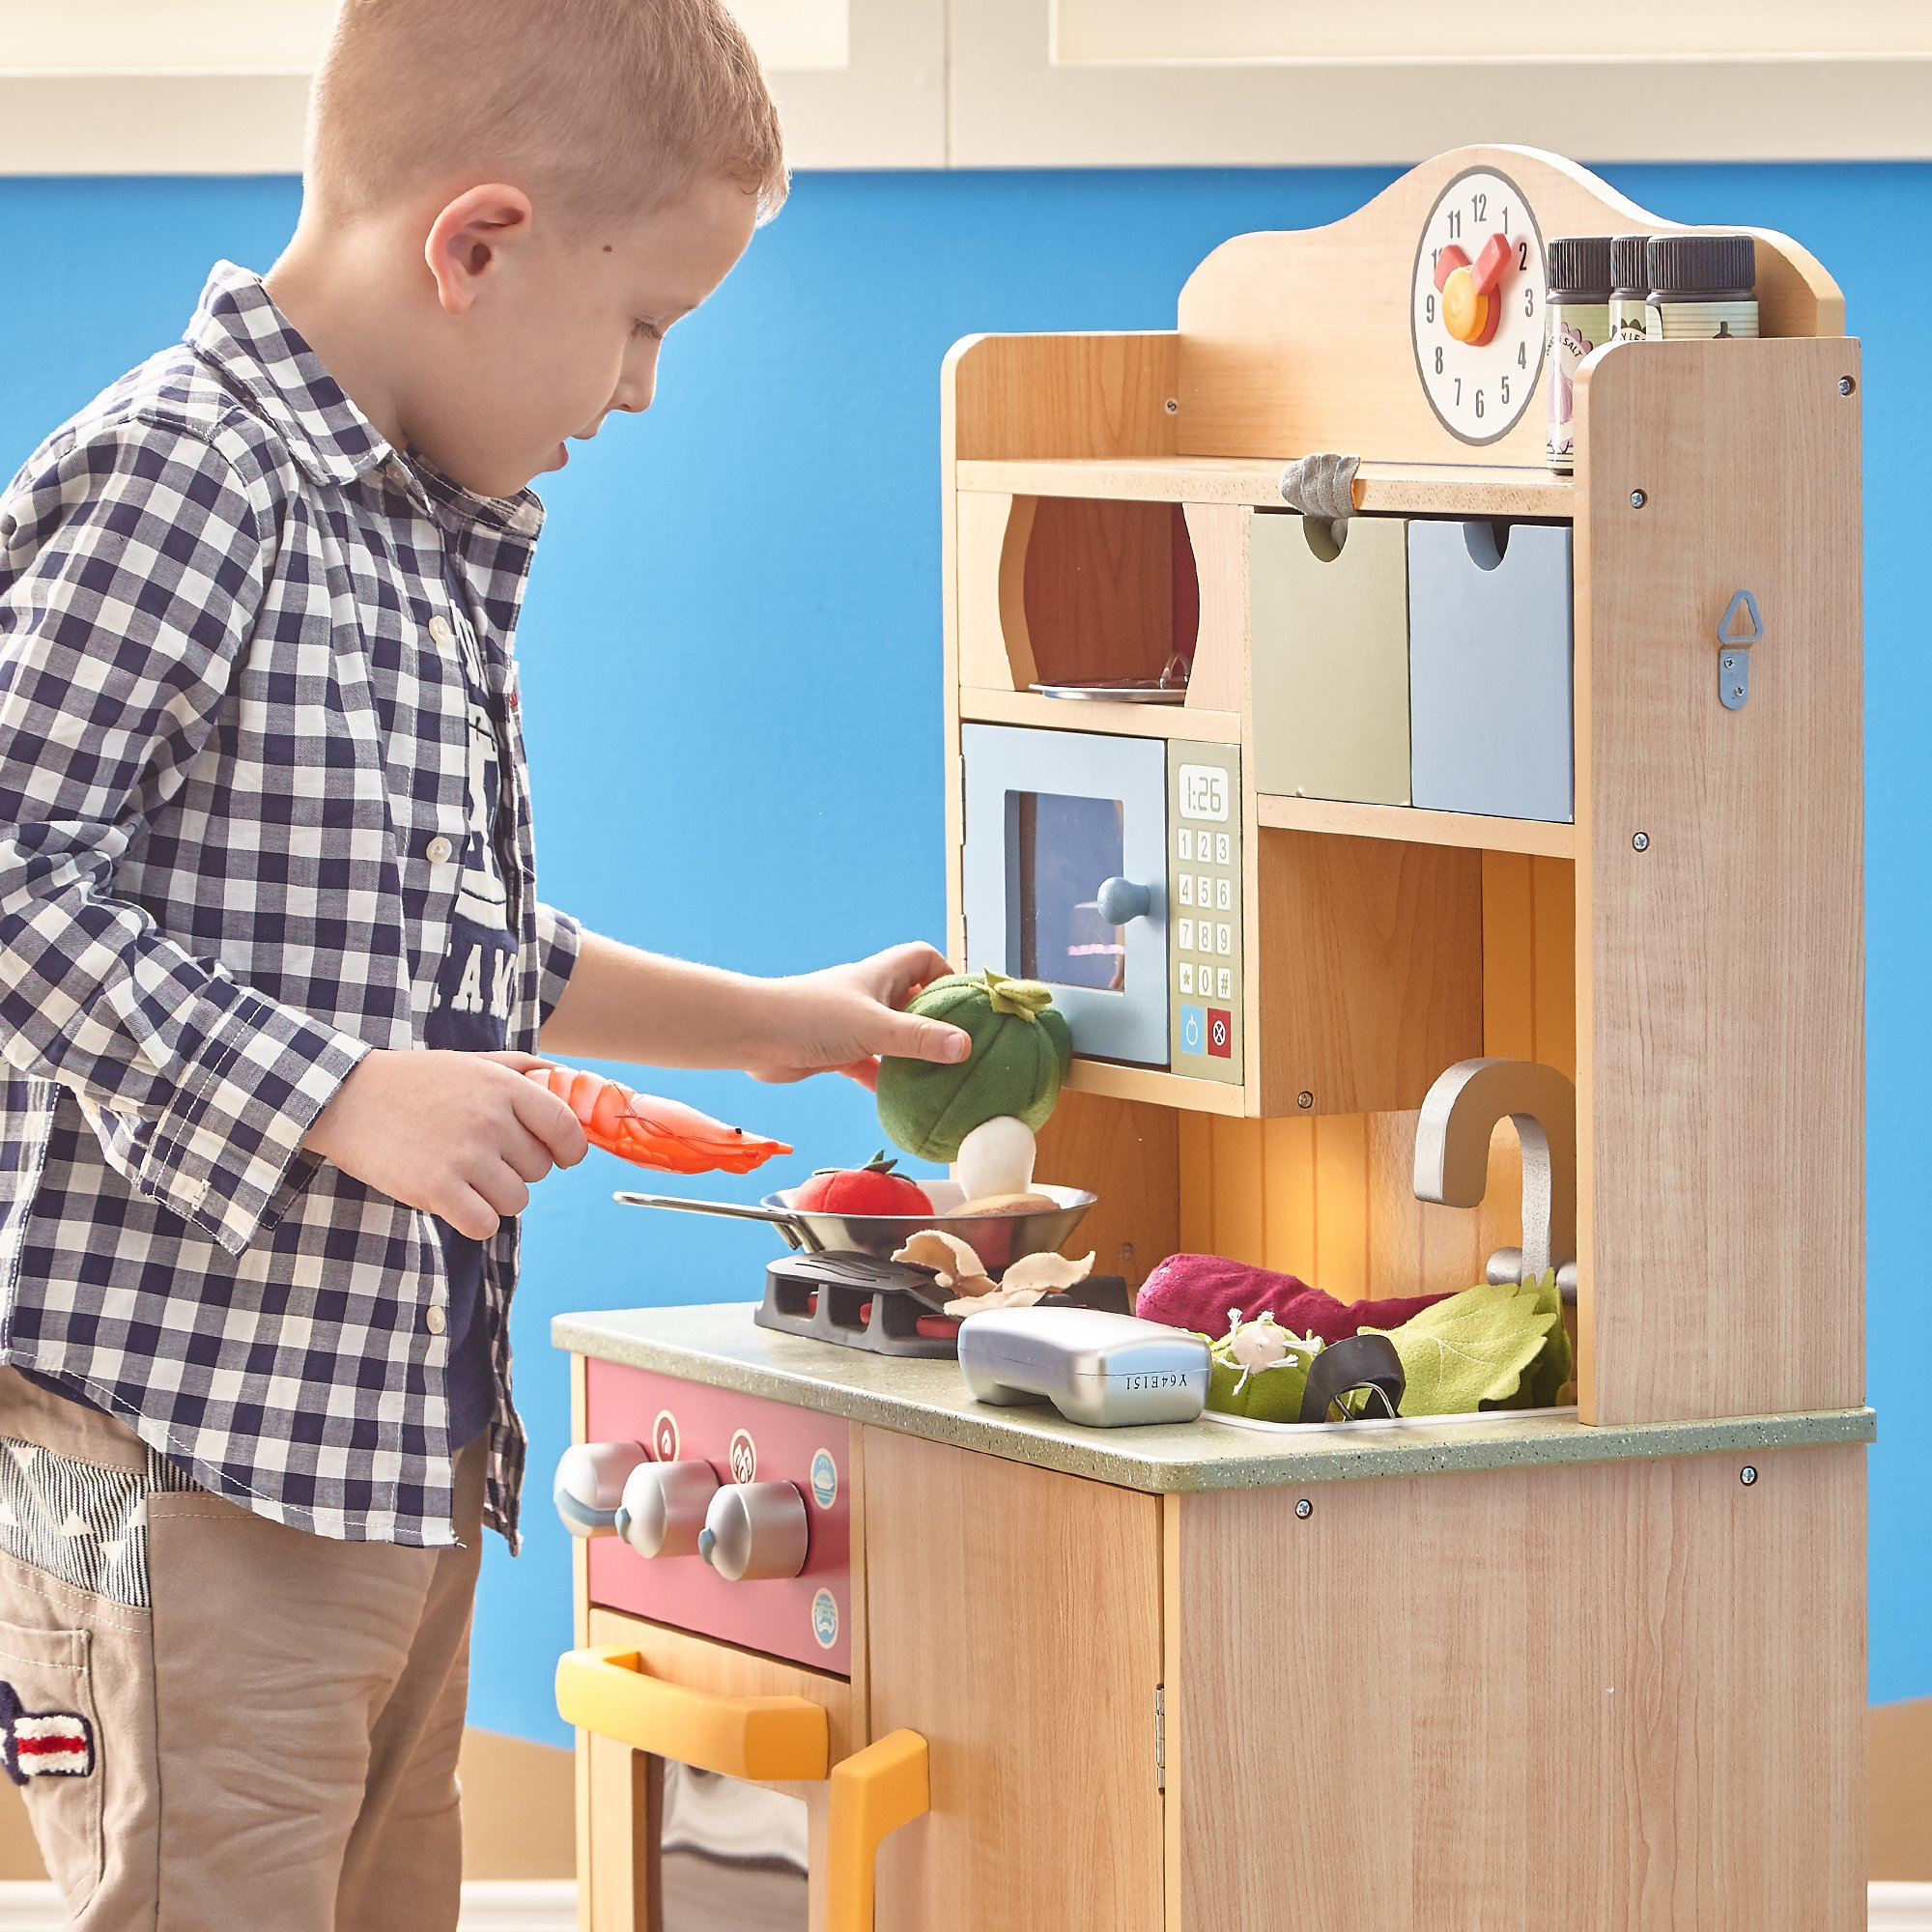 Teamson Kids - Little Chef Florence Classic Kids Play Kitchen | Toddler Pretend Play Set with Accessories - Wood Grain by Teamson Kids (Image #2)